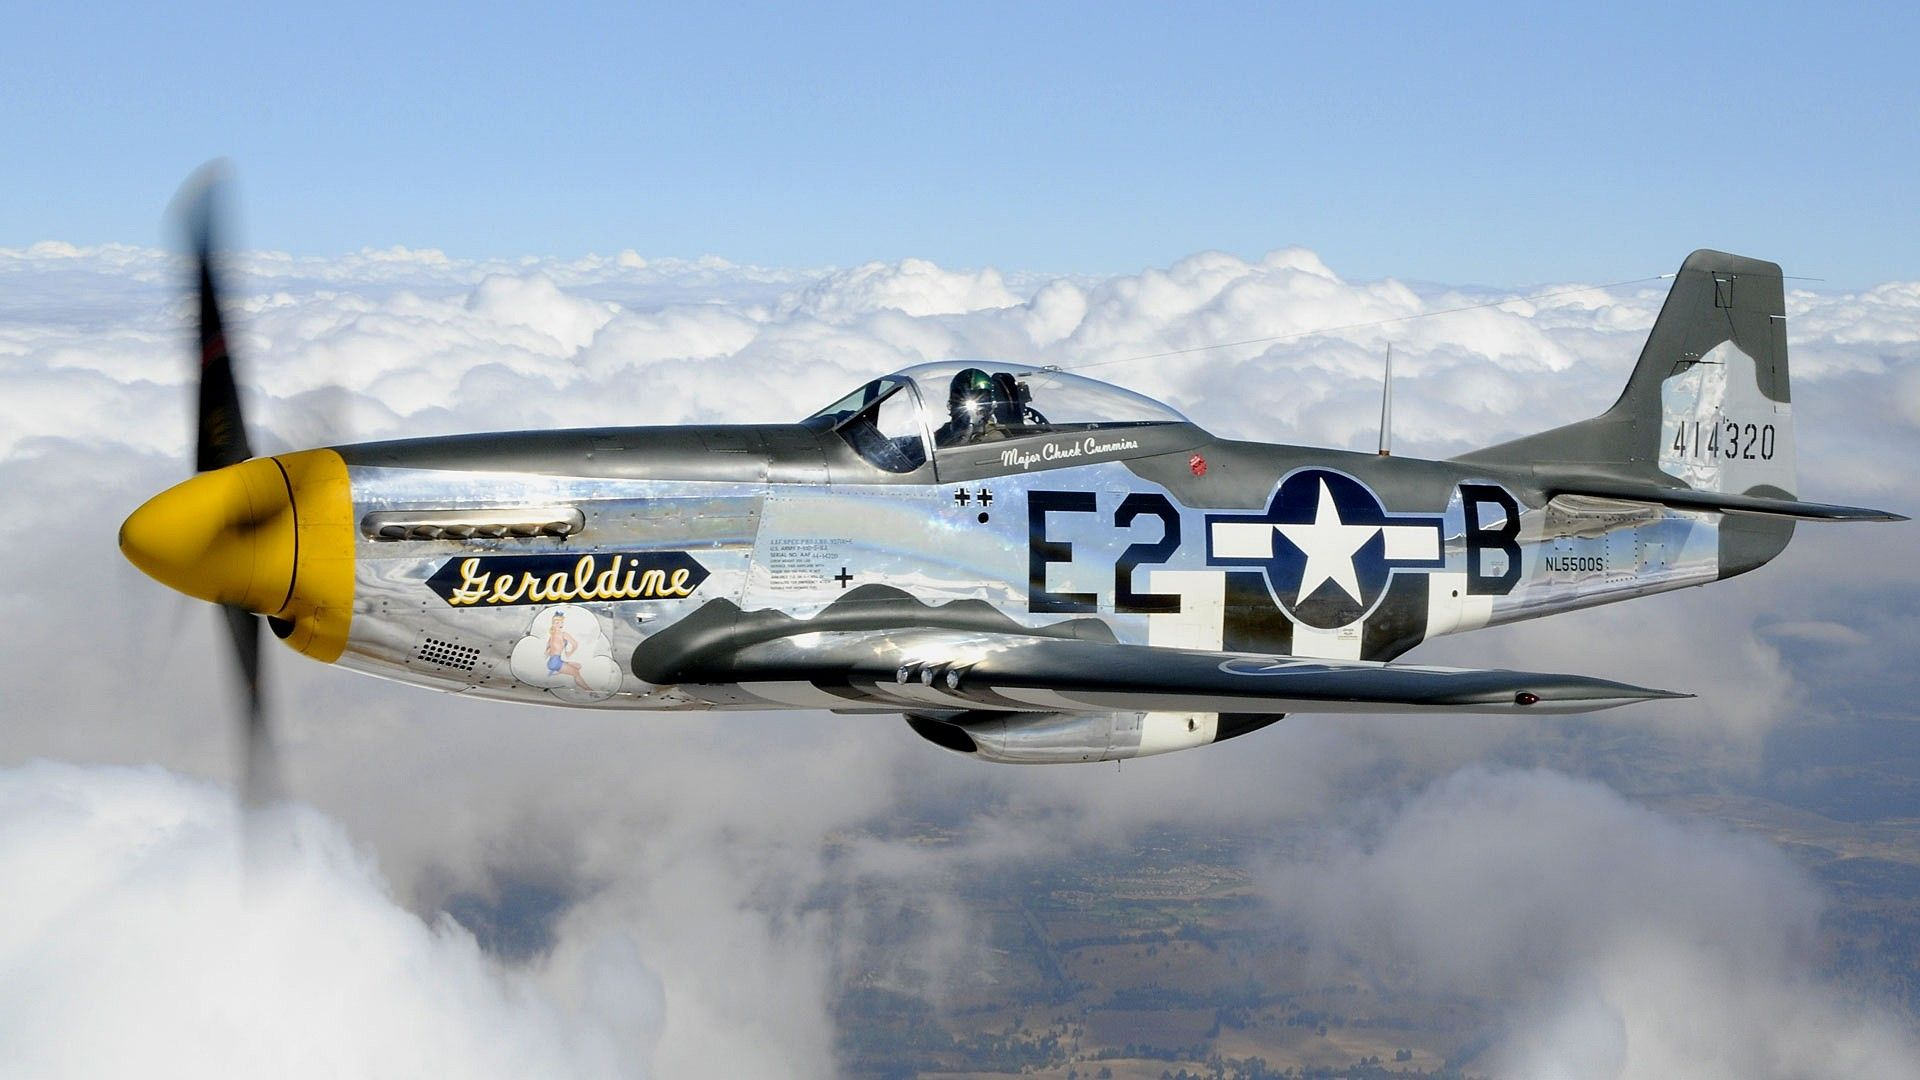 p 51 mustang wallpaper widescreen 2 hd wallpapers | war stuff